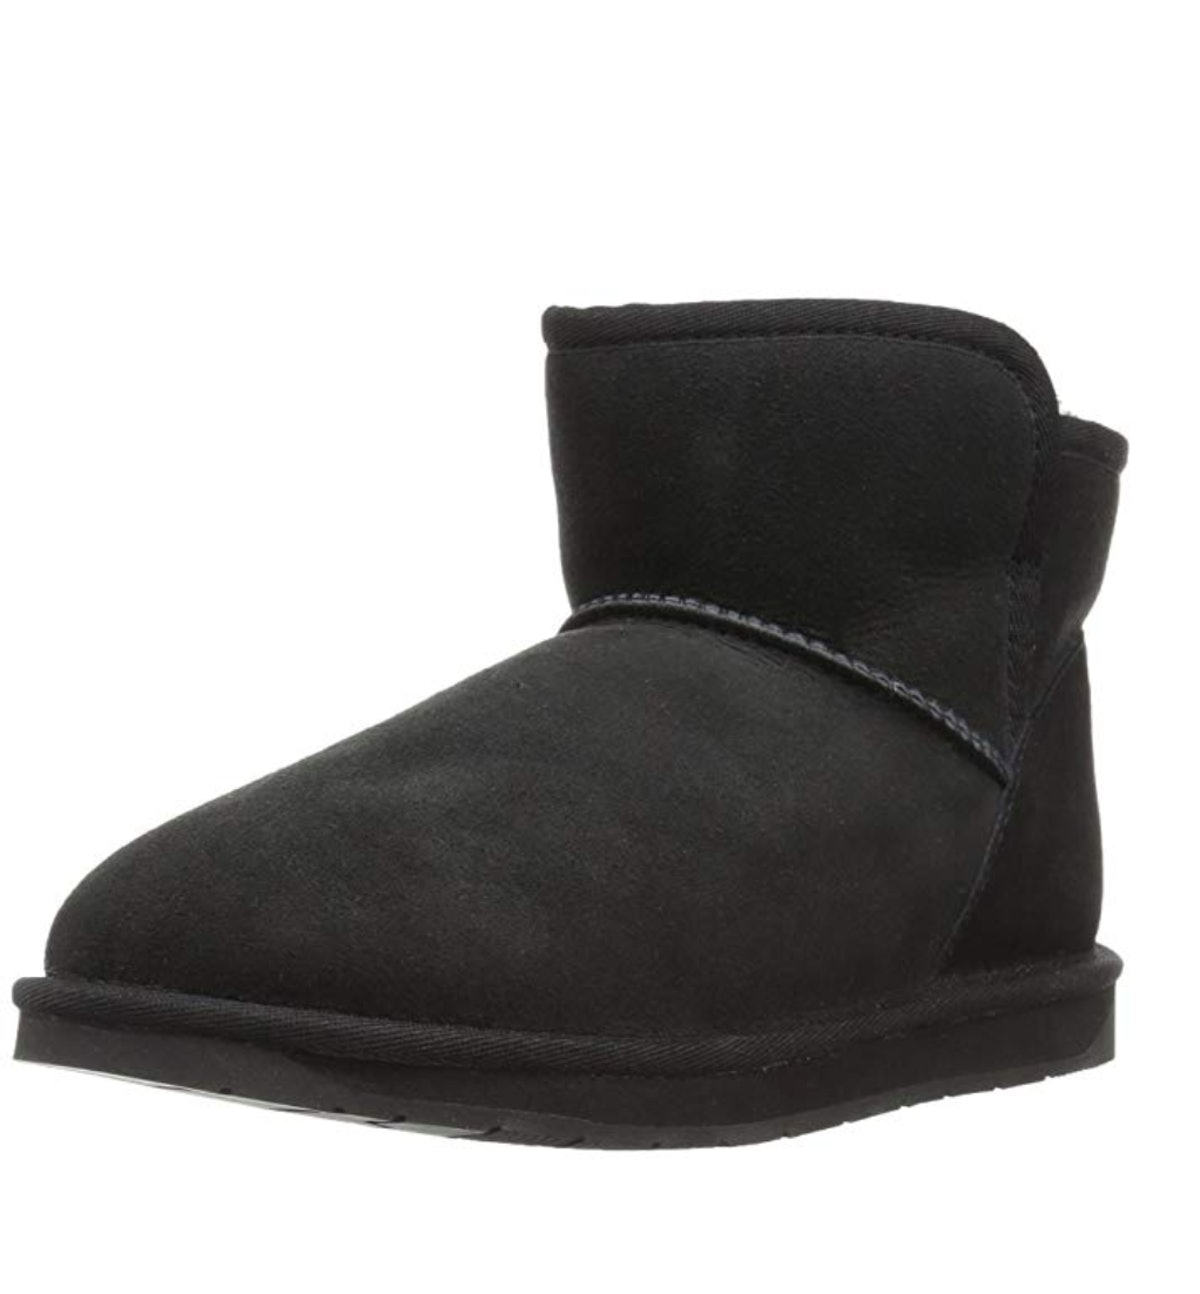 206 Collective Women's Bellevue Shearling Ankle Boot